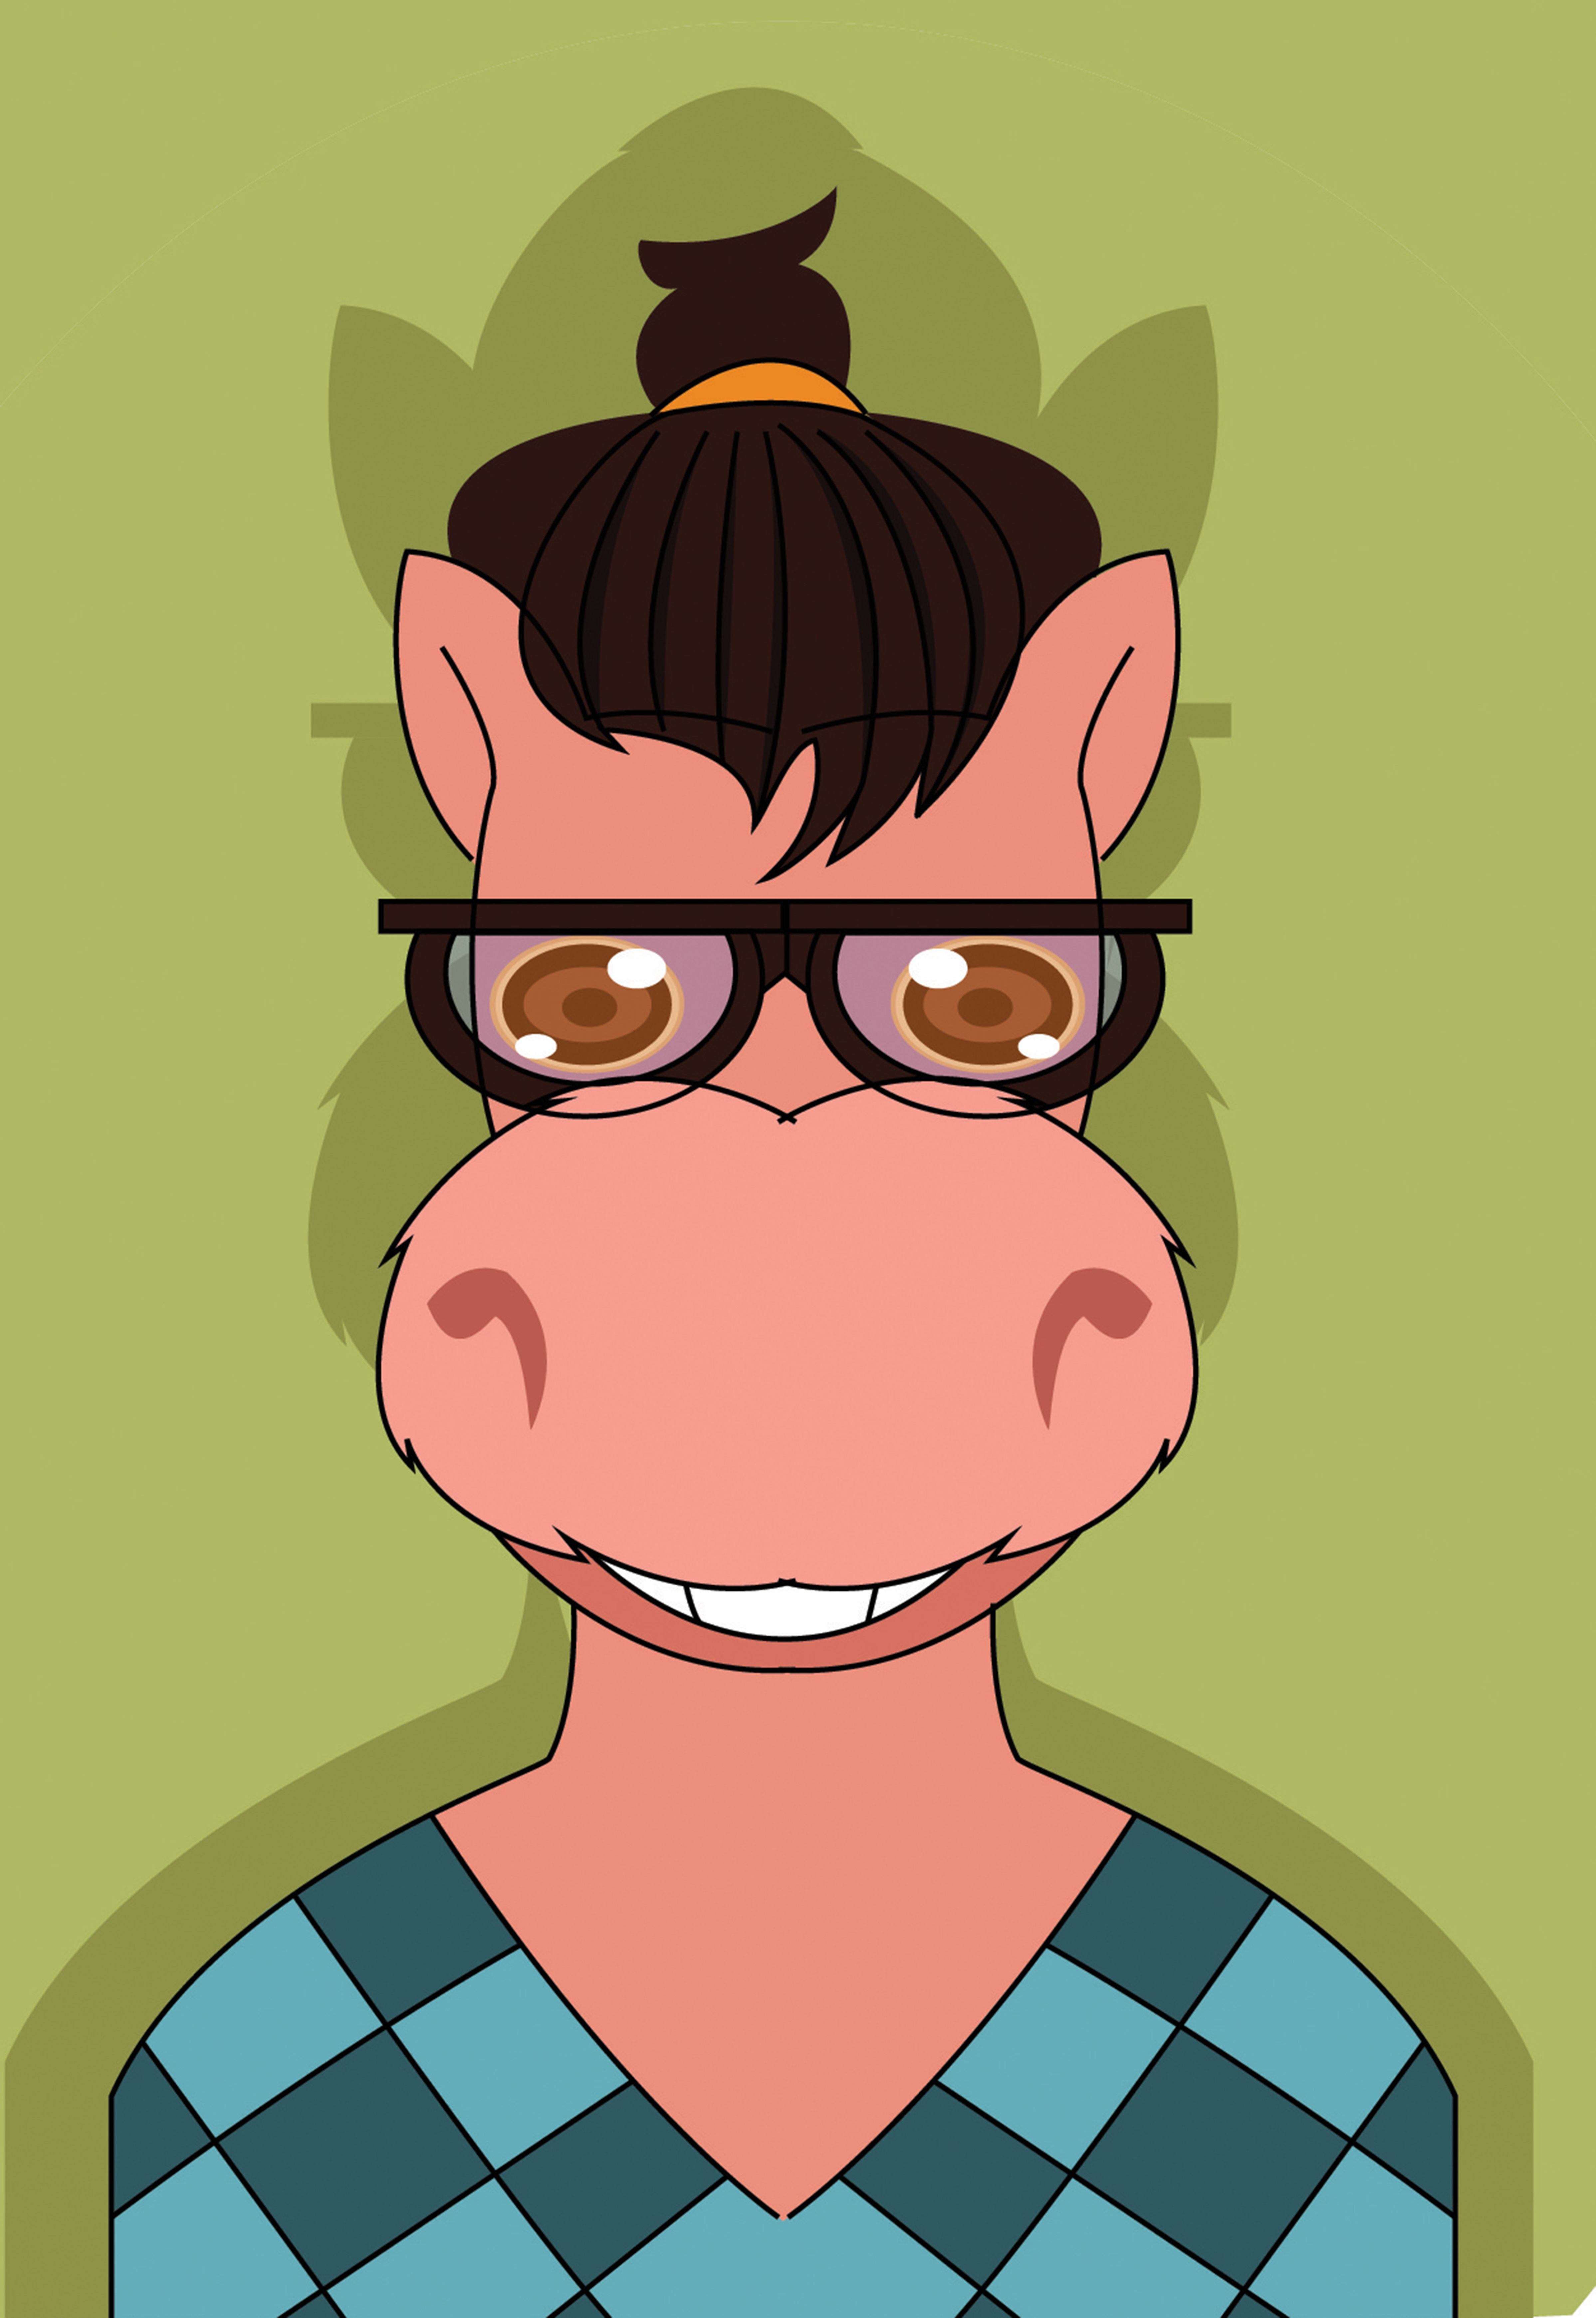 102835 download wallpaper Donkey, Art, Glasses, Spectacles, Sweater, Vector screensavers and pictures for free